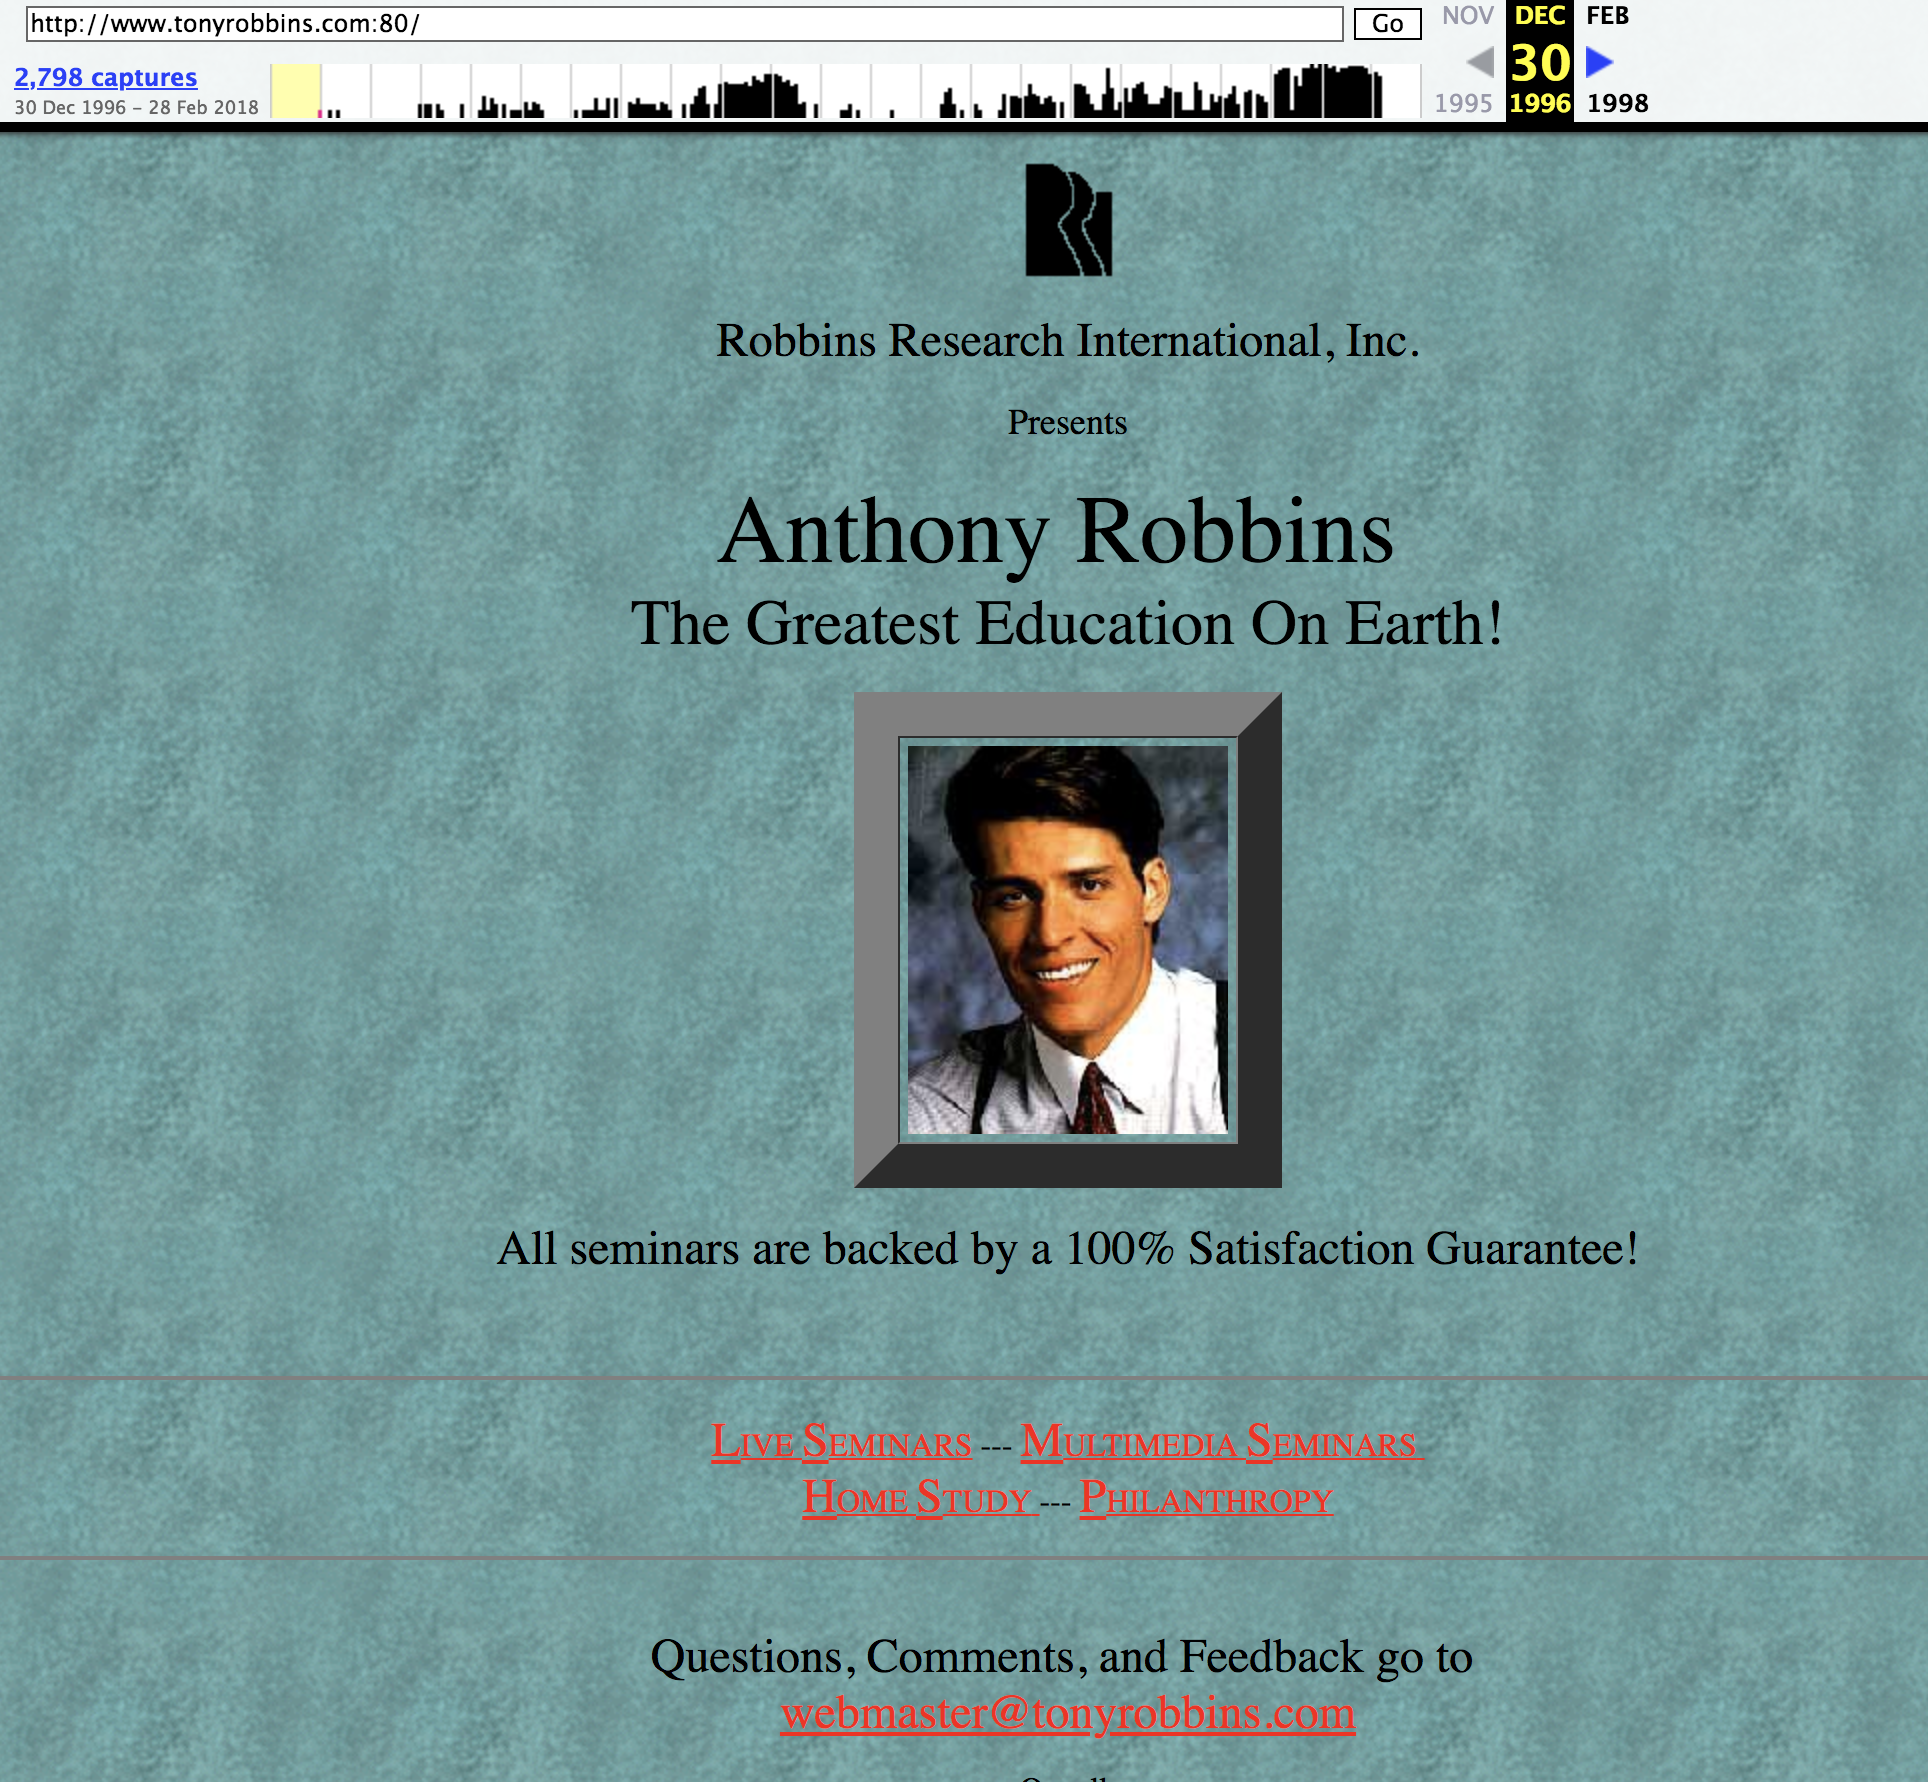 1996 - Tony's website was modest, but his confidence in himself was not.